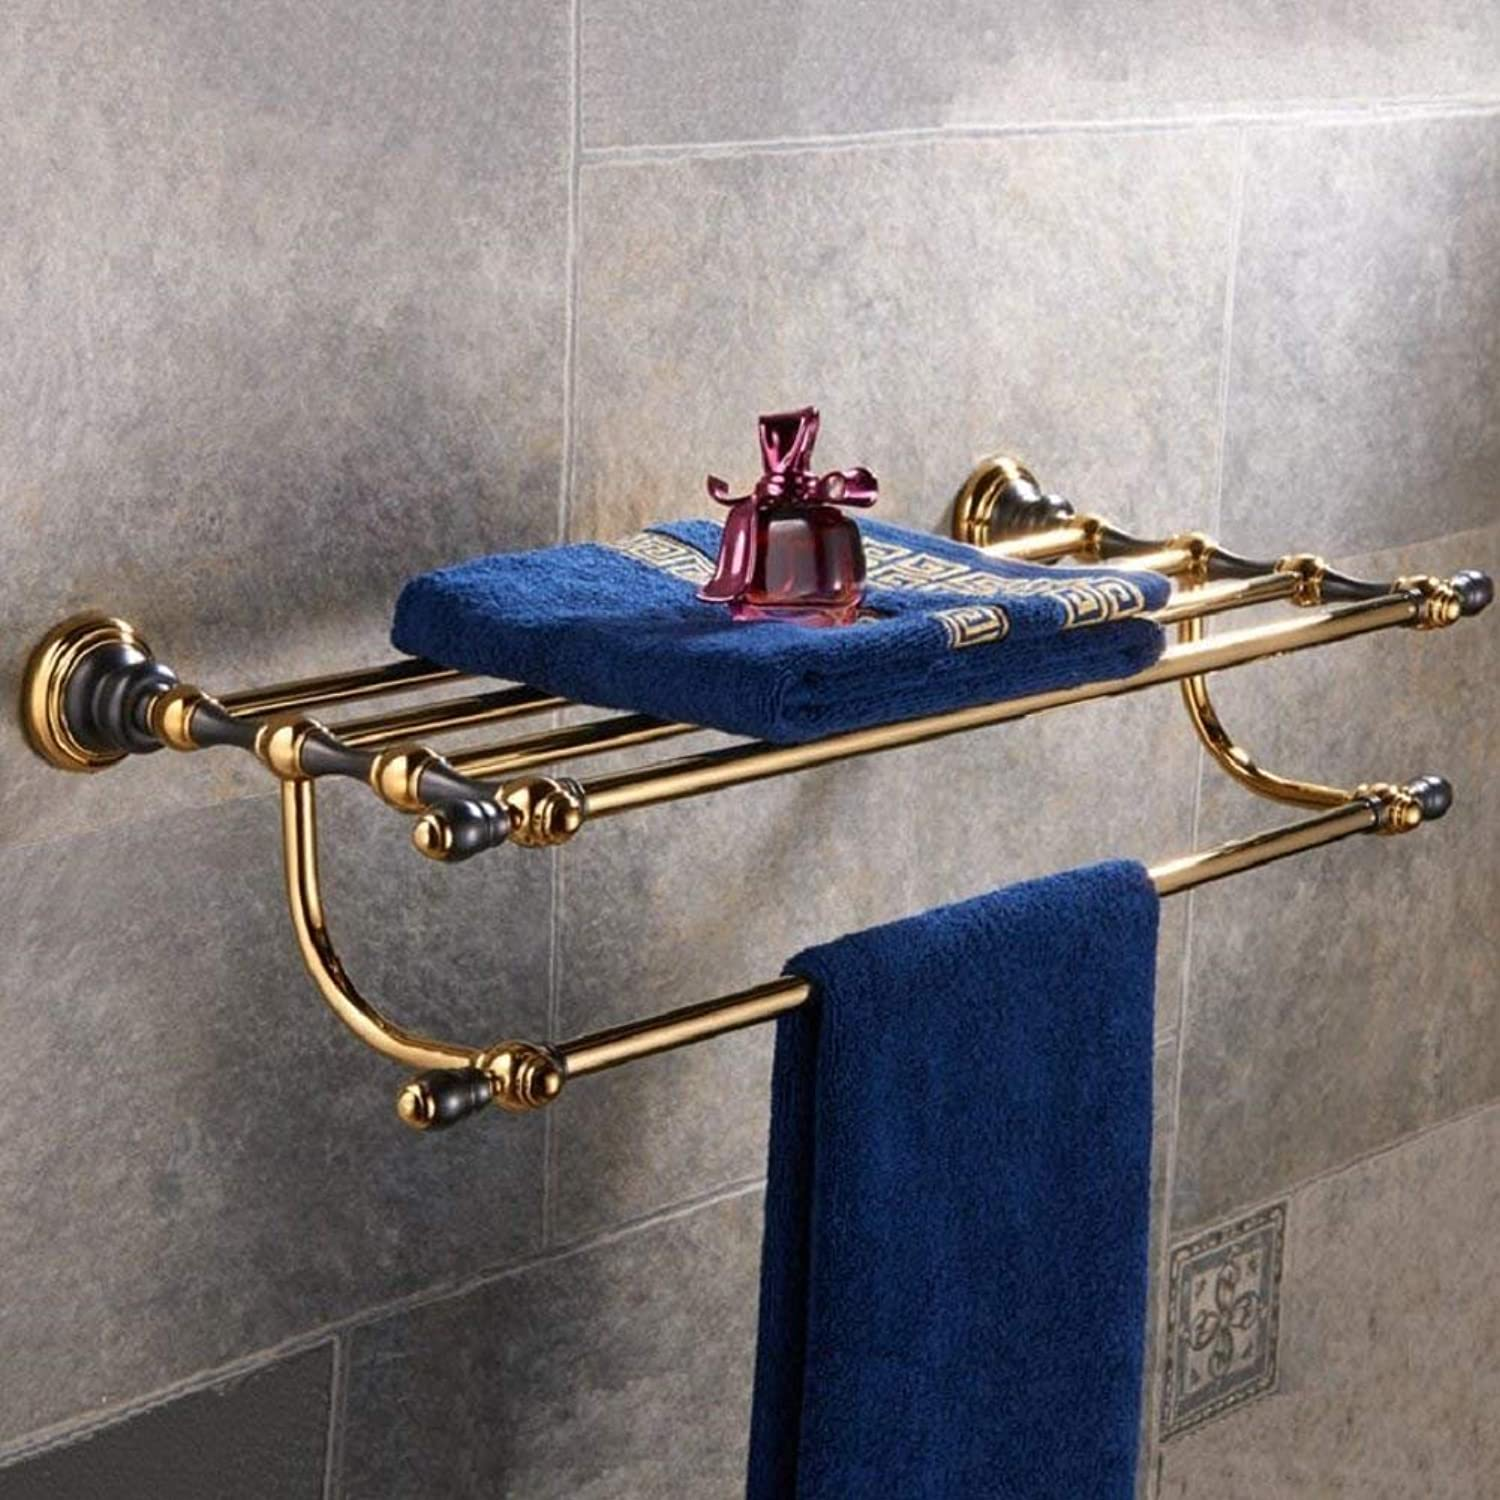 Luxury Bathroom European Aristocratic Towels in Pure Copper - Dry-Towels Dry-Towels - Sustainable and wear